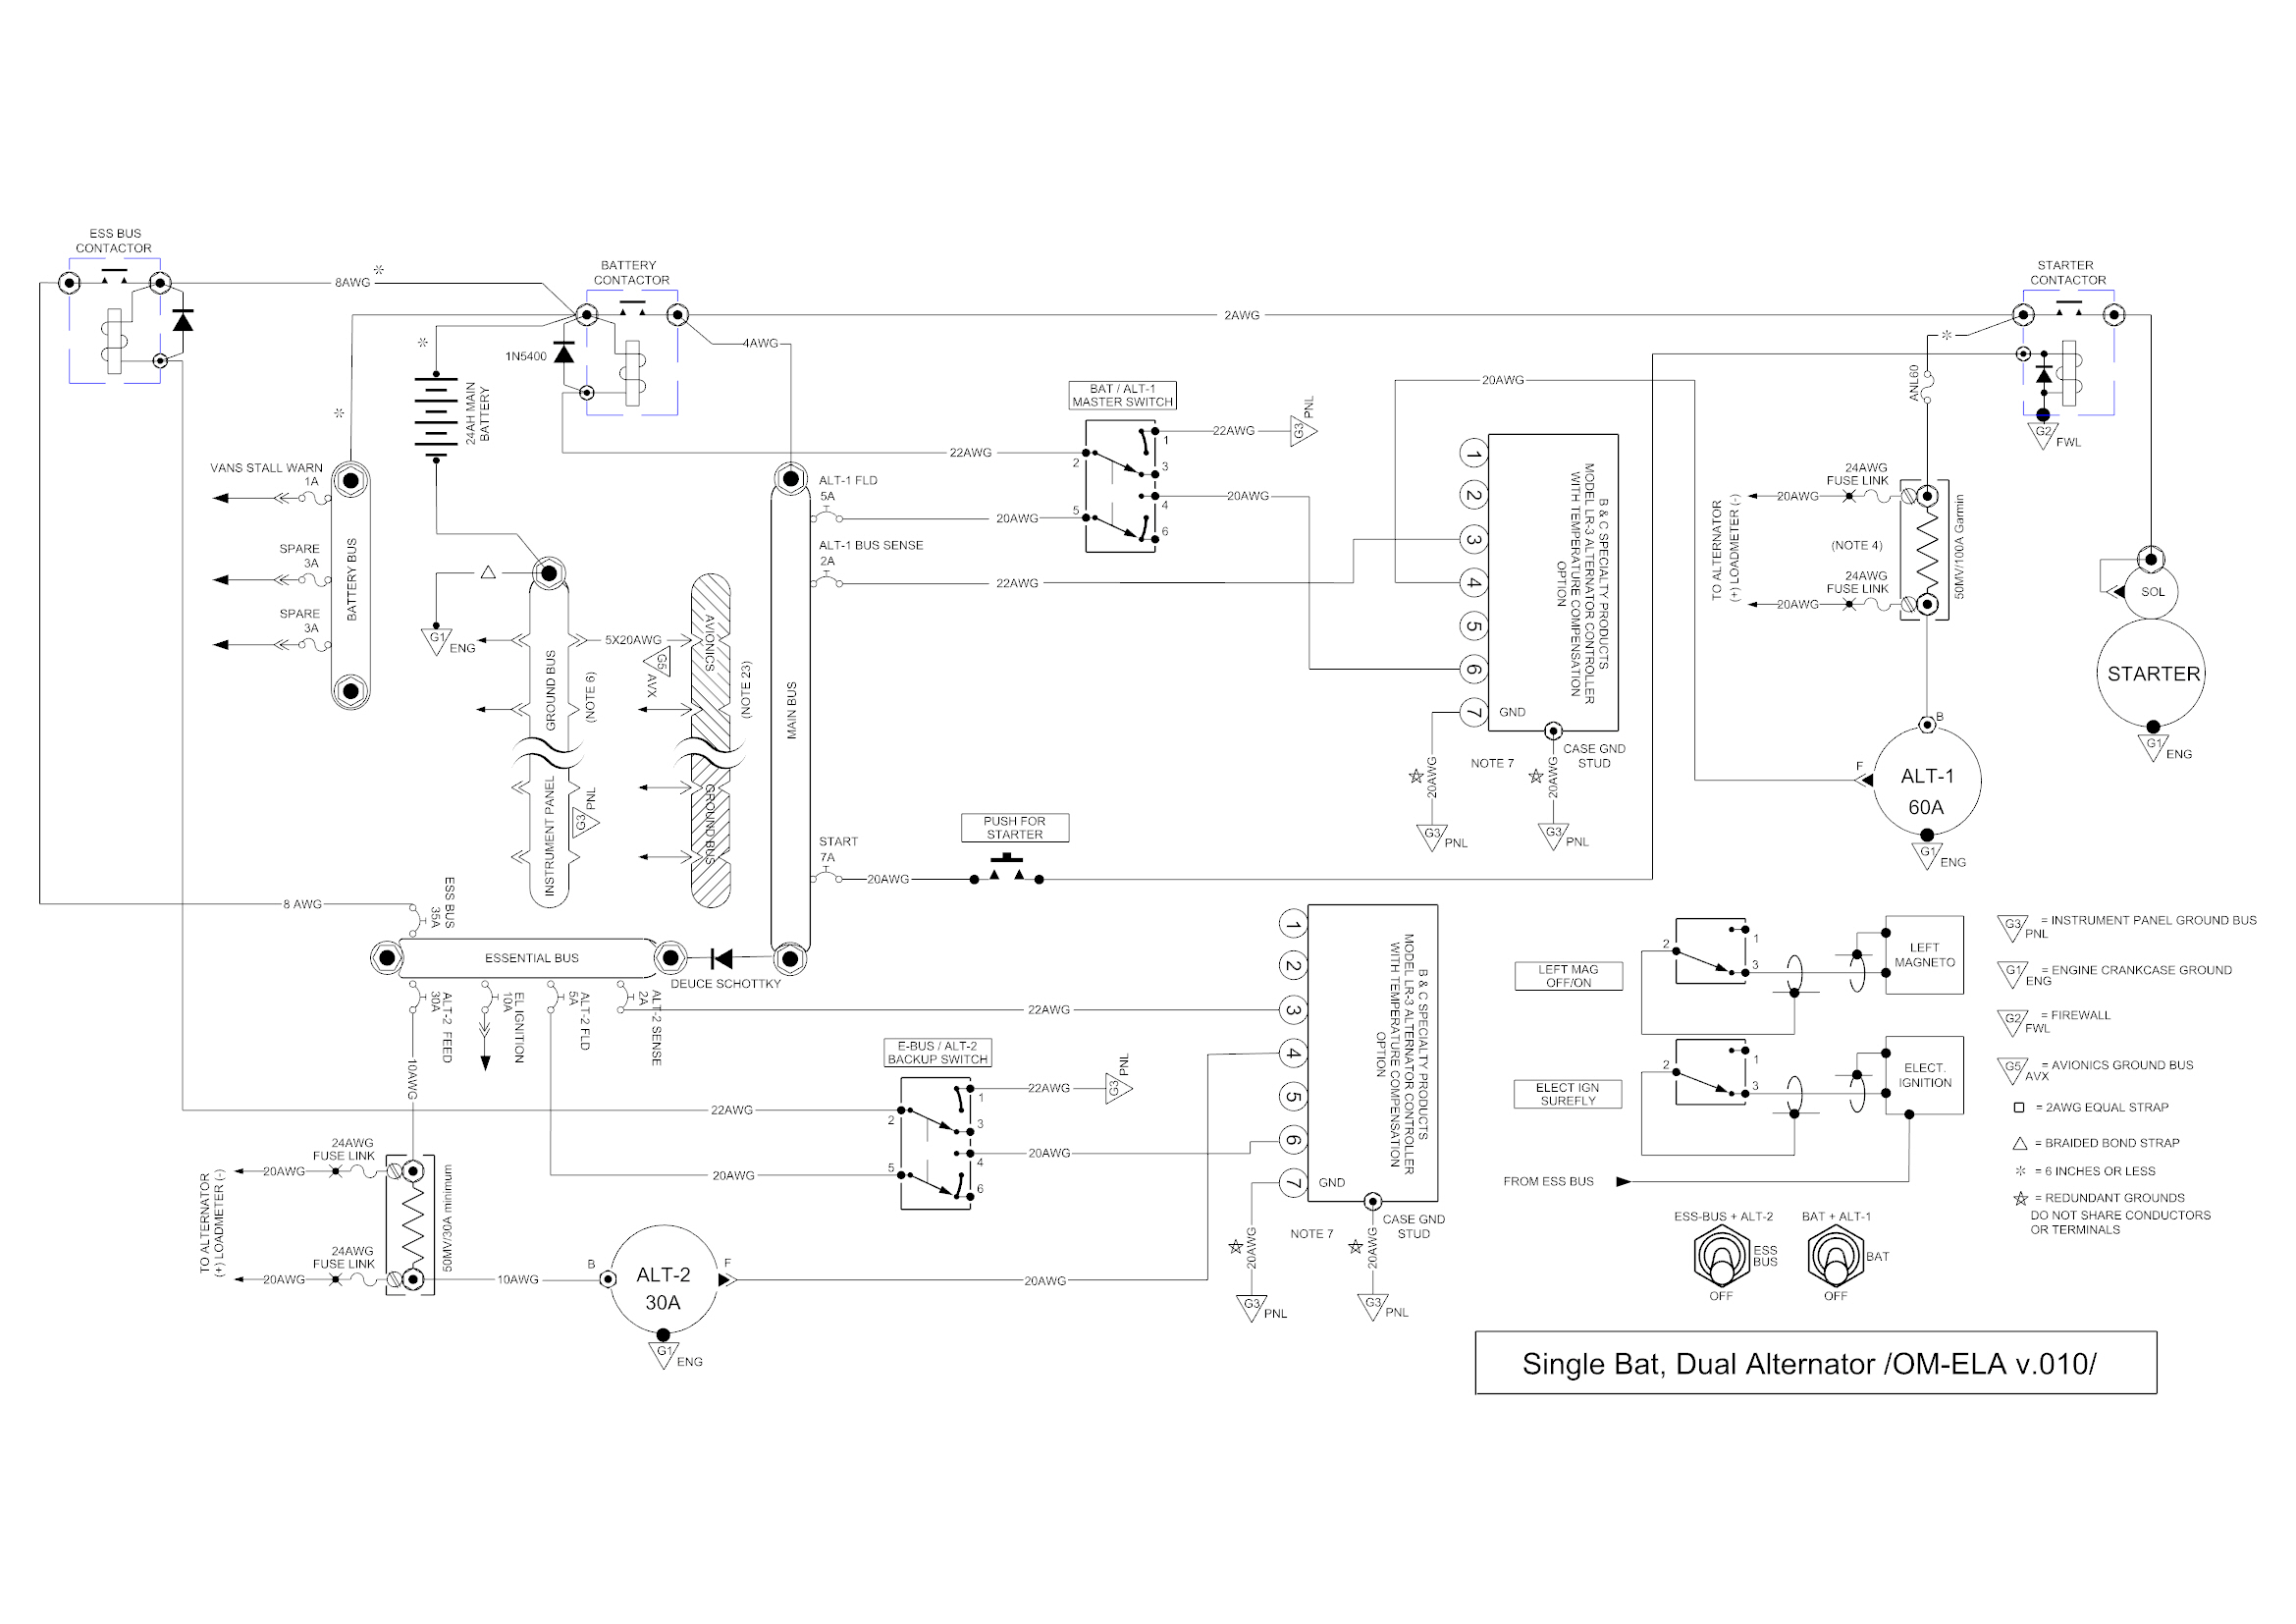 OM-ELA Basic Elec Diagram v.010 E BUS Relay replaced.jpg